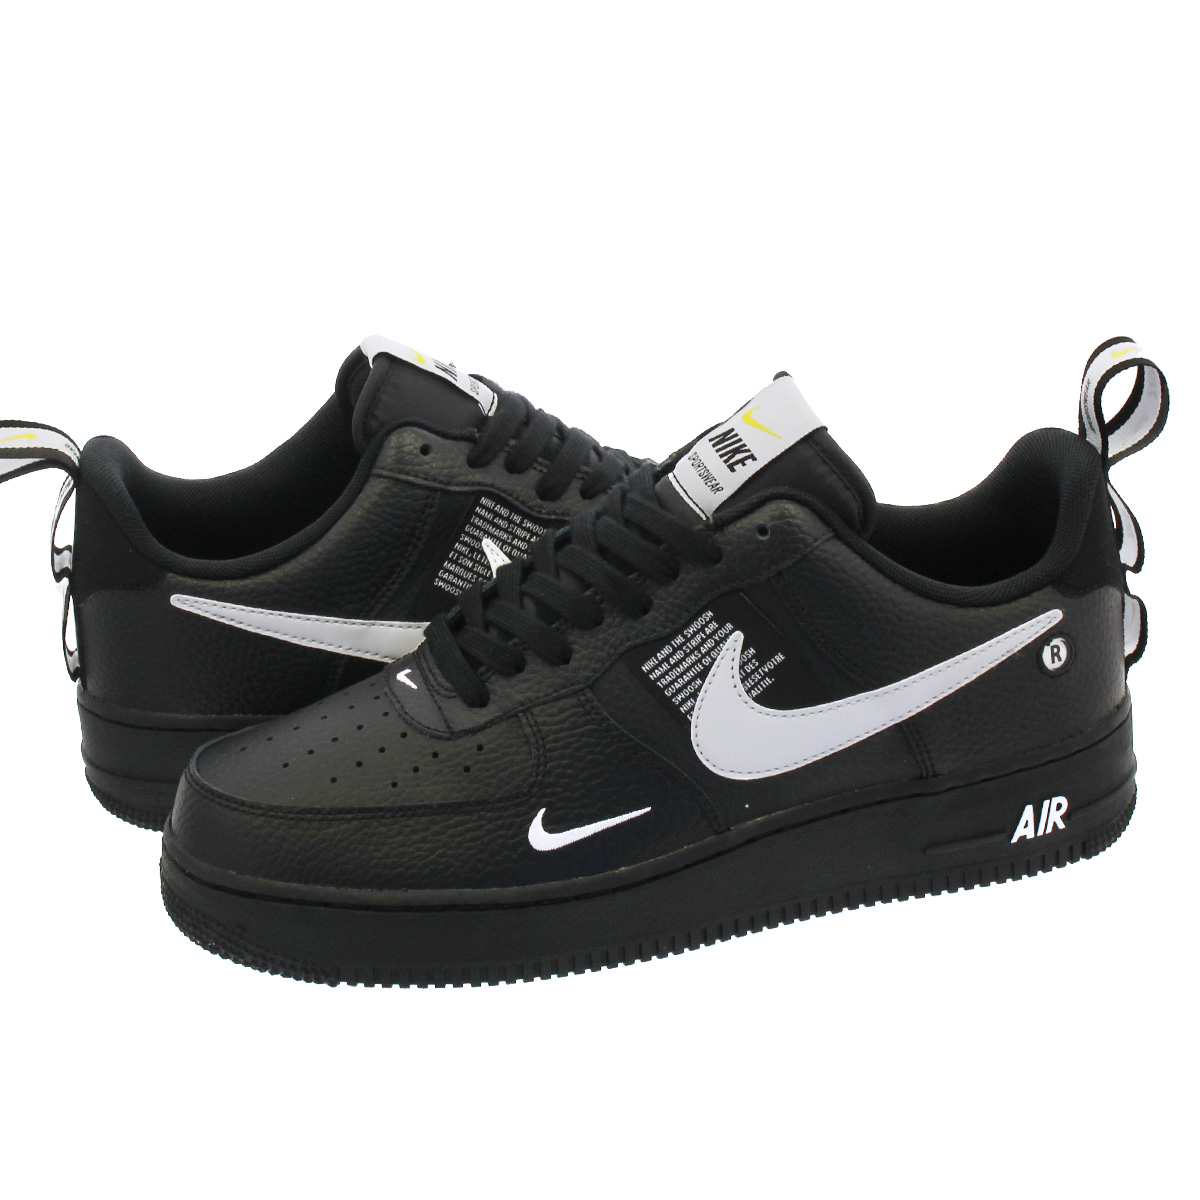 e94740ebe1ff9d NIKE AIR FORCE 1  07 LV8 UTILITY Nike air force 1  07 LV8 utility  BLACK WHITE BLACK TOUR YELLOW aj7747-001